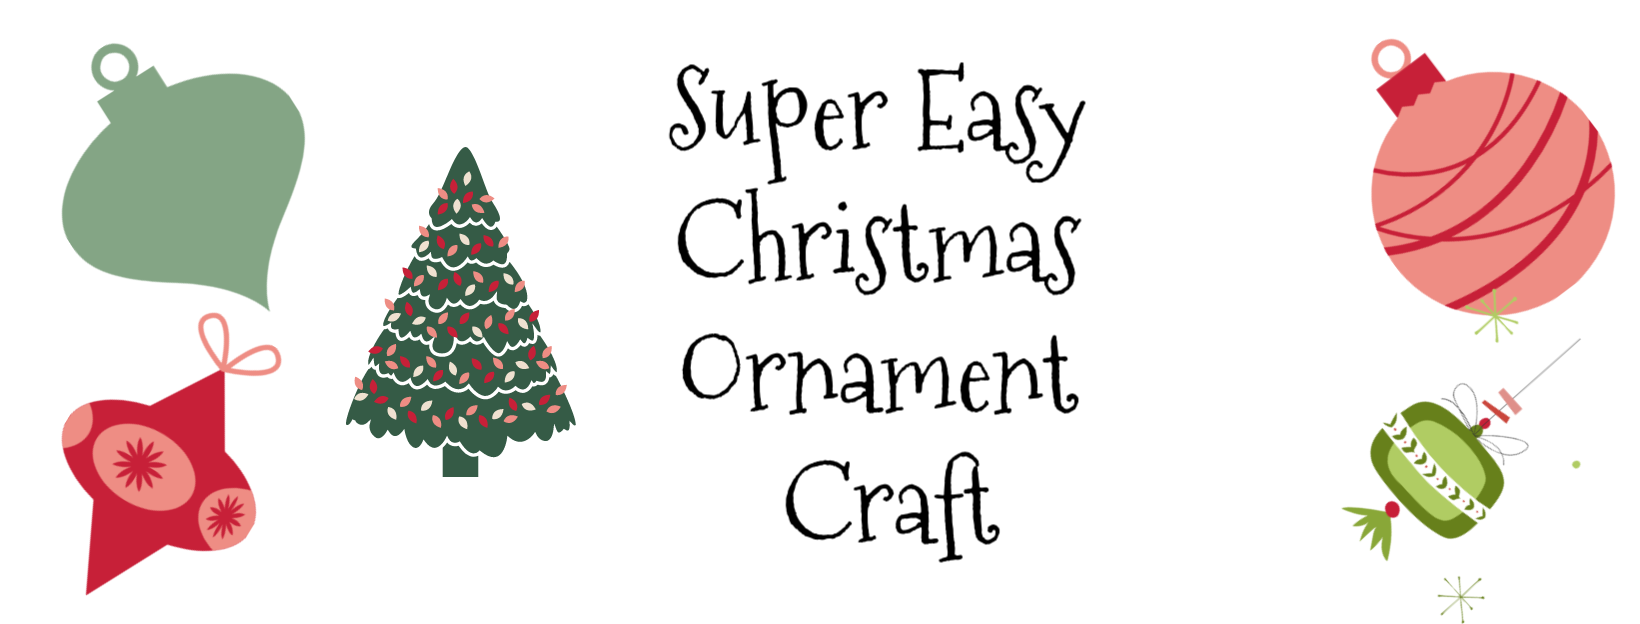 Super Easy Christmas Ornament Craft